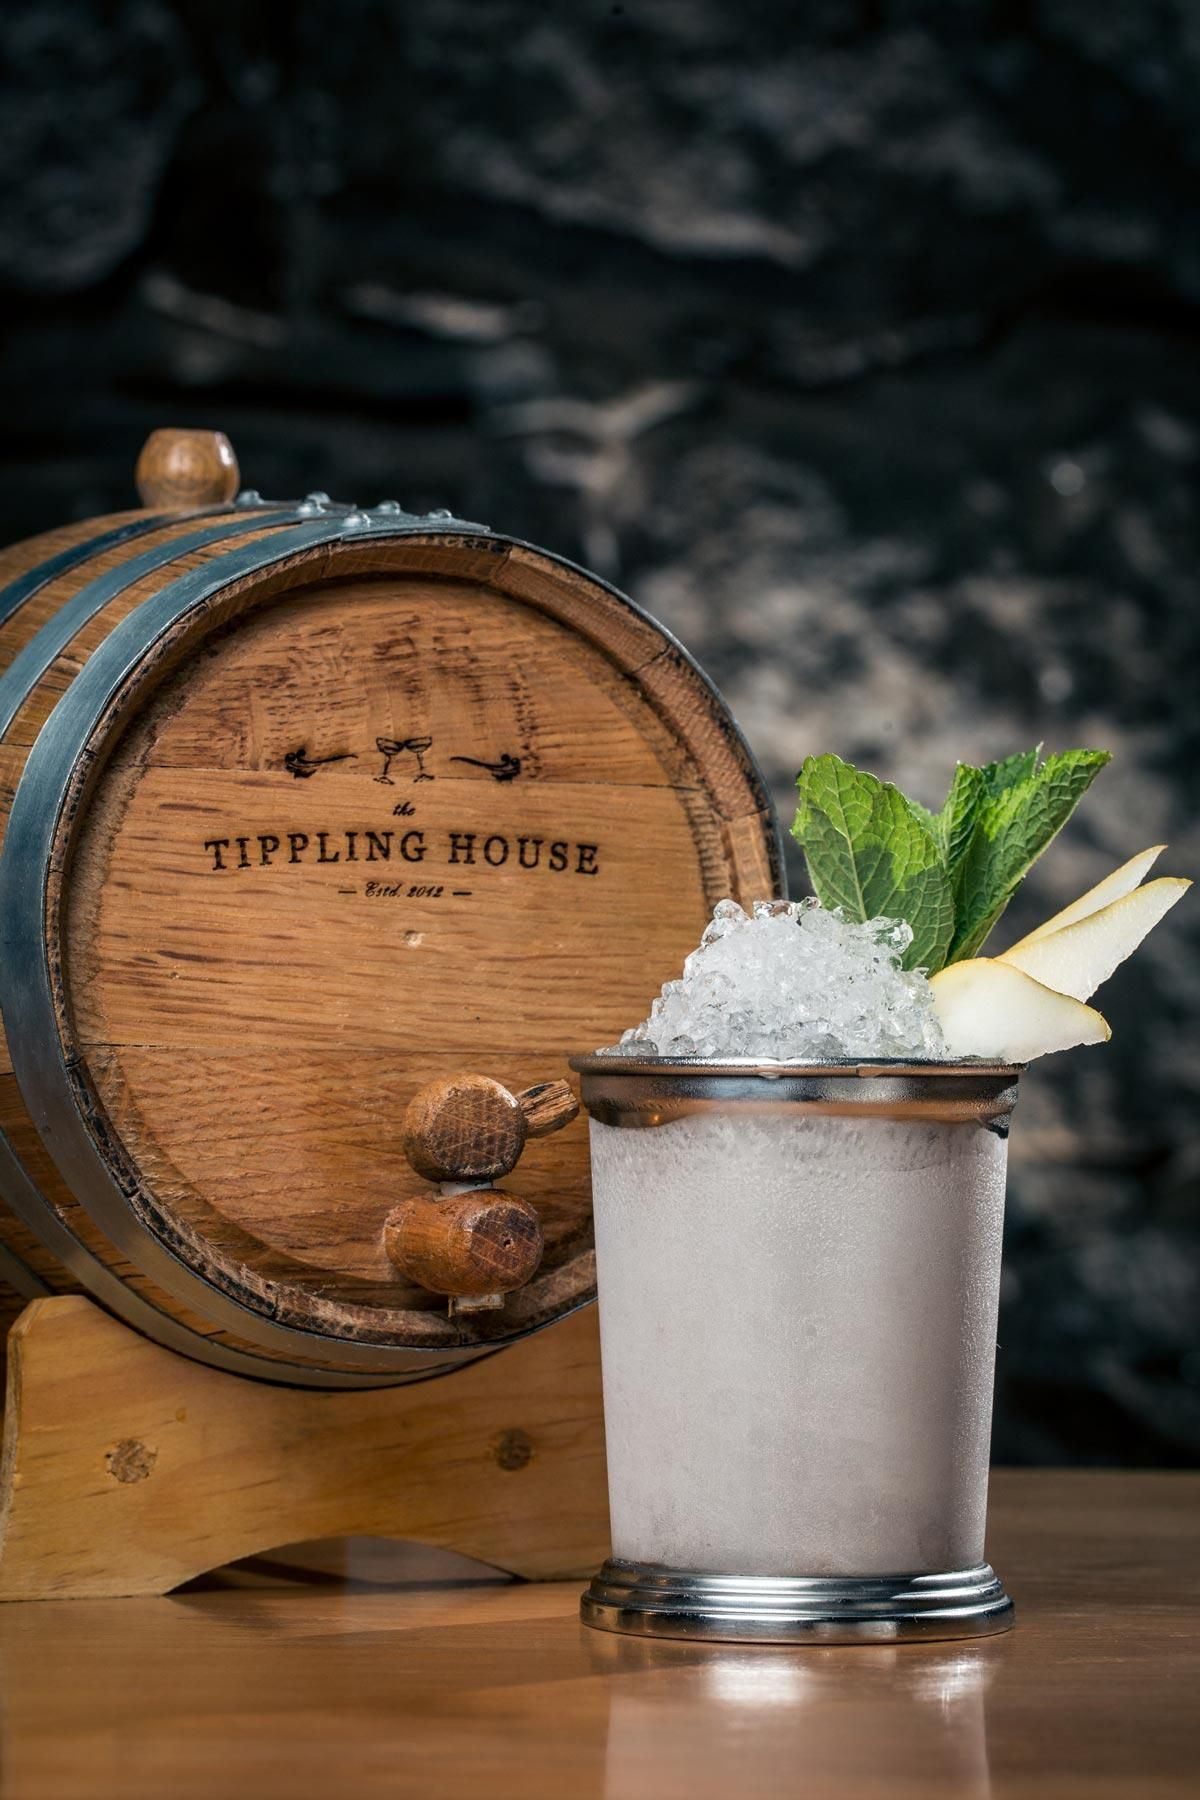 The Tippling House